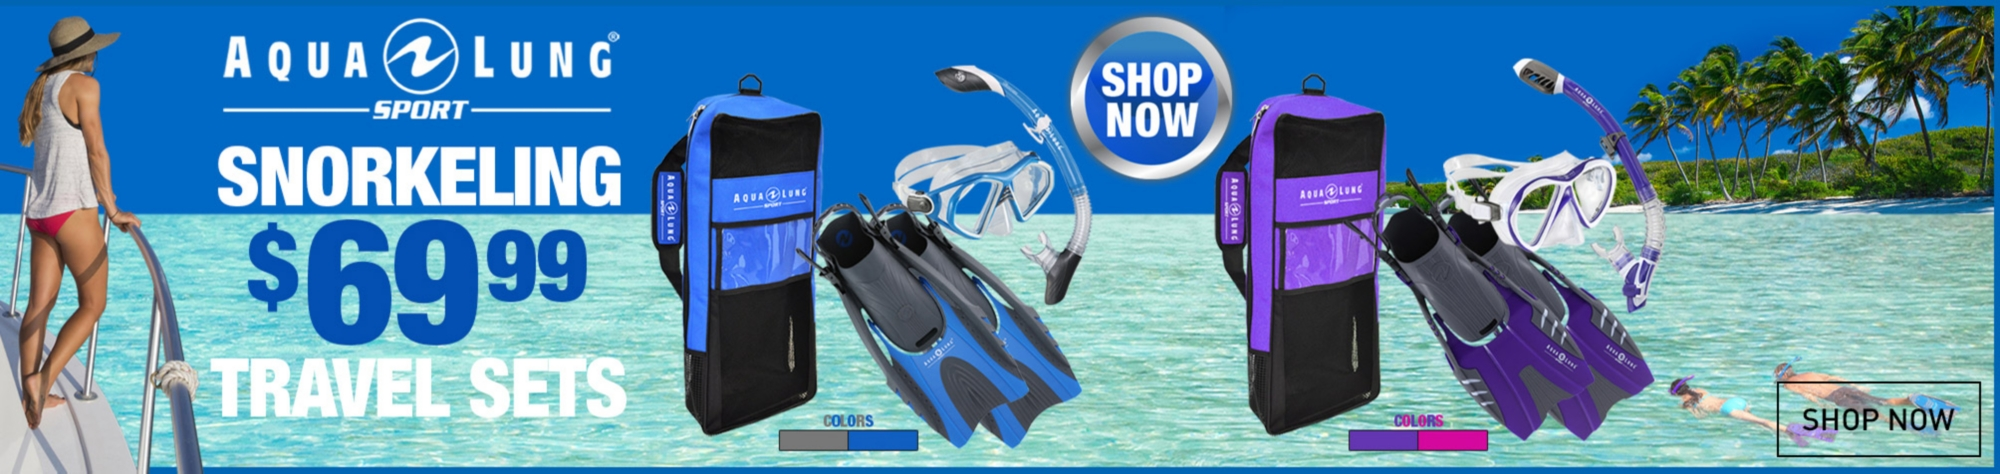 Shop Aqua Lung Snorkeling Equipment